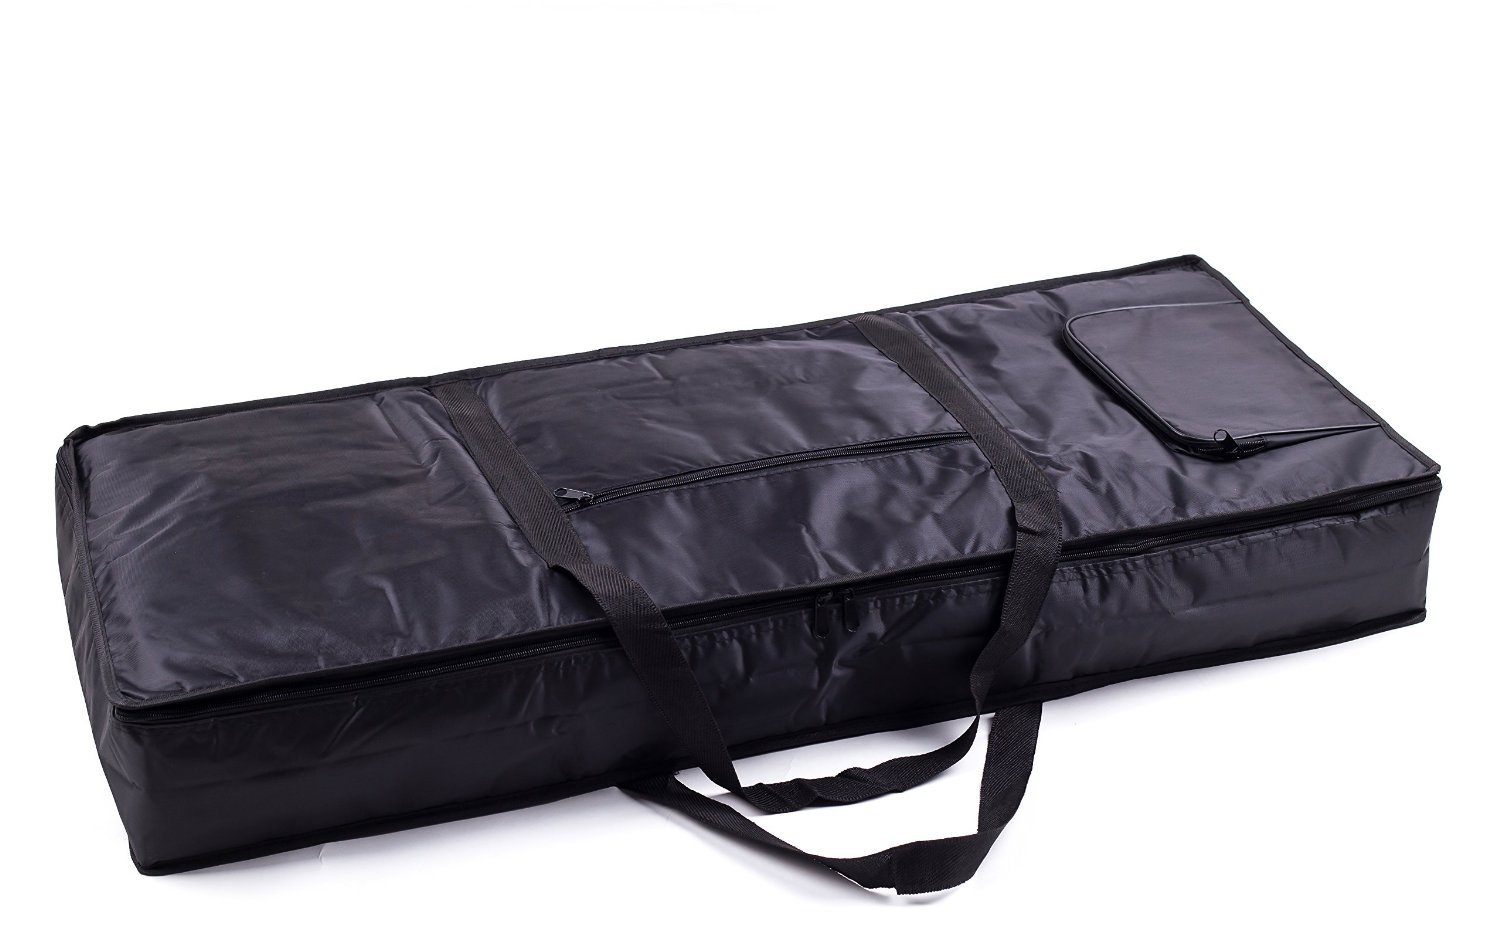 Tosnail 61-note Keyboard Gig Bag Piano Case Padded with 6mm Cotton - 39'' x 16'' x 6'' (61 Note Keyboard) by Tosnail (Image #3)